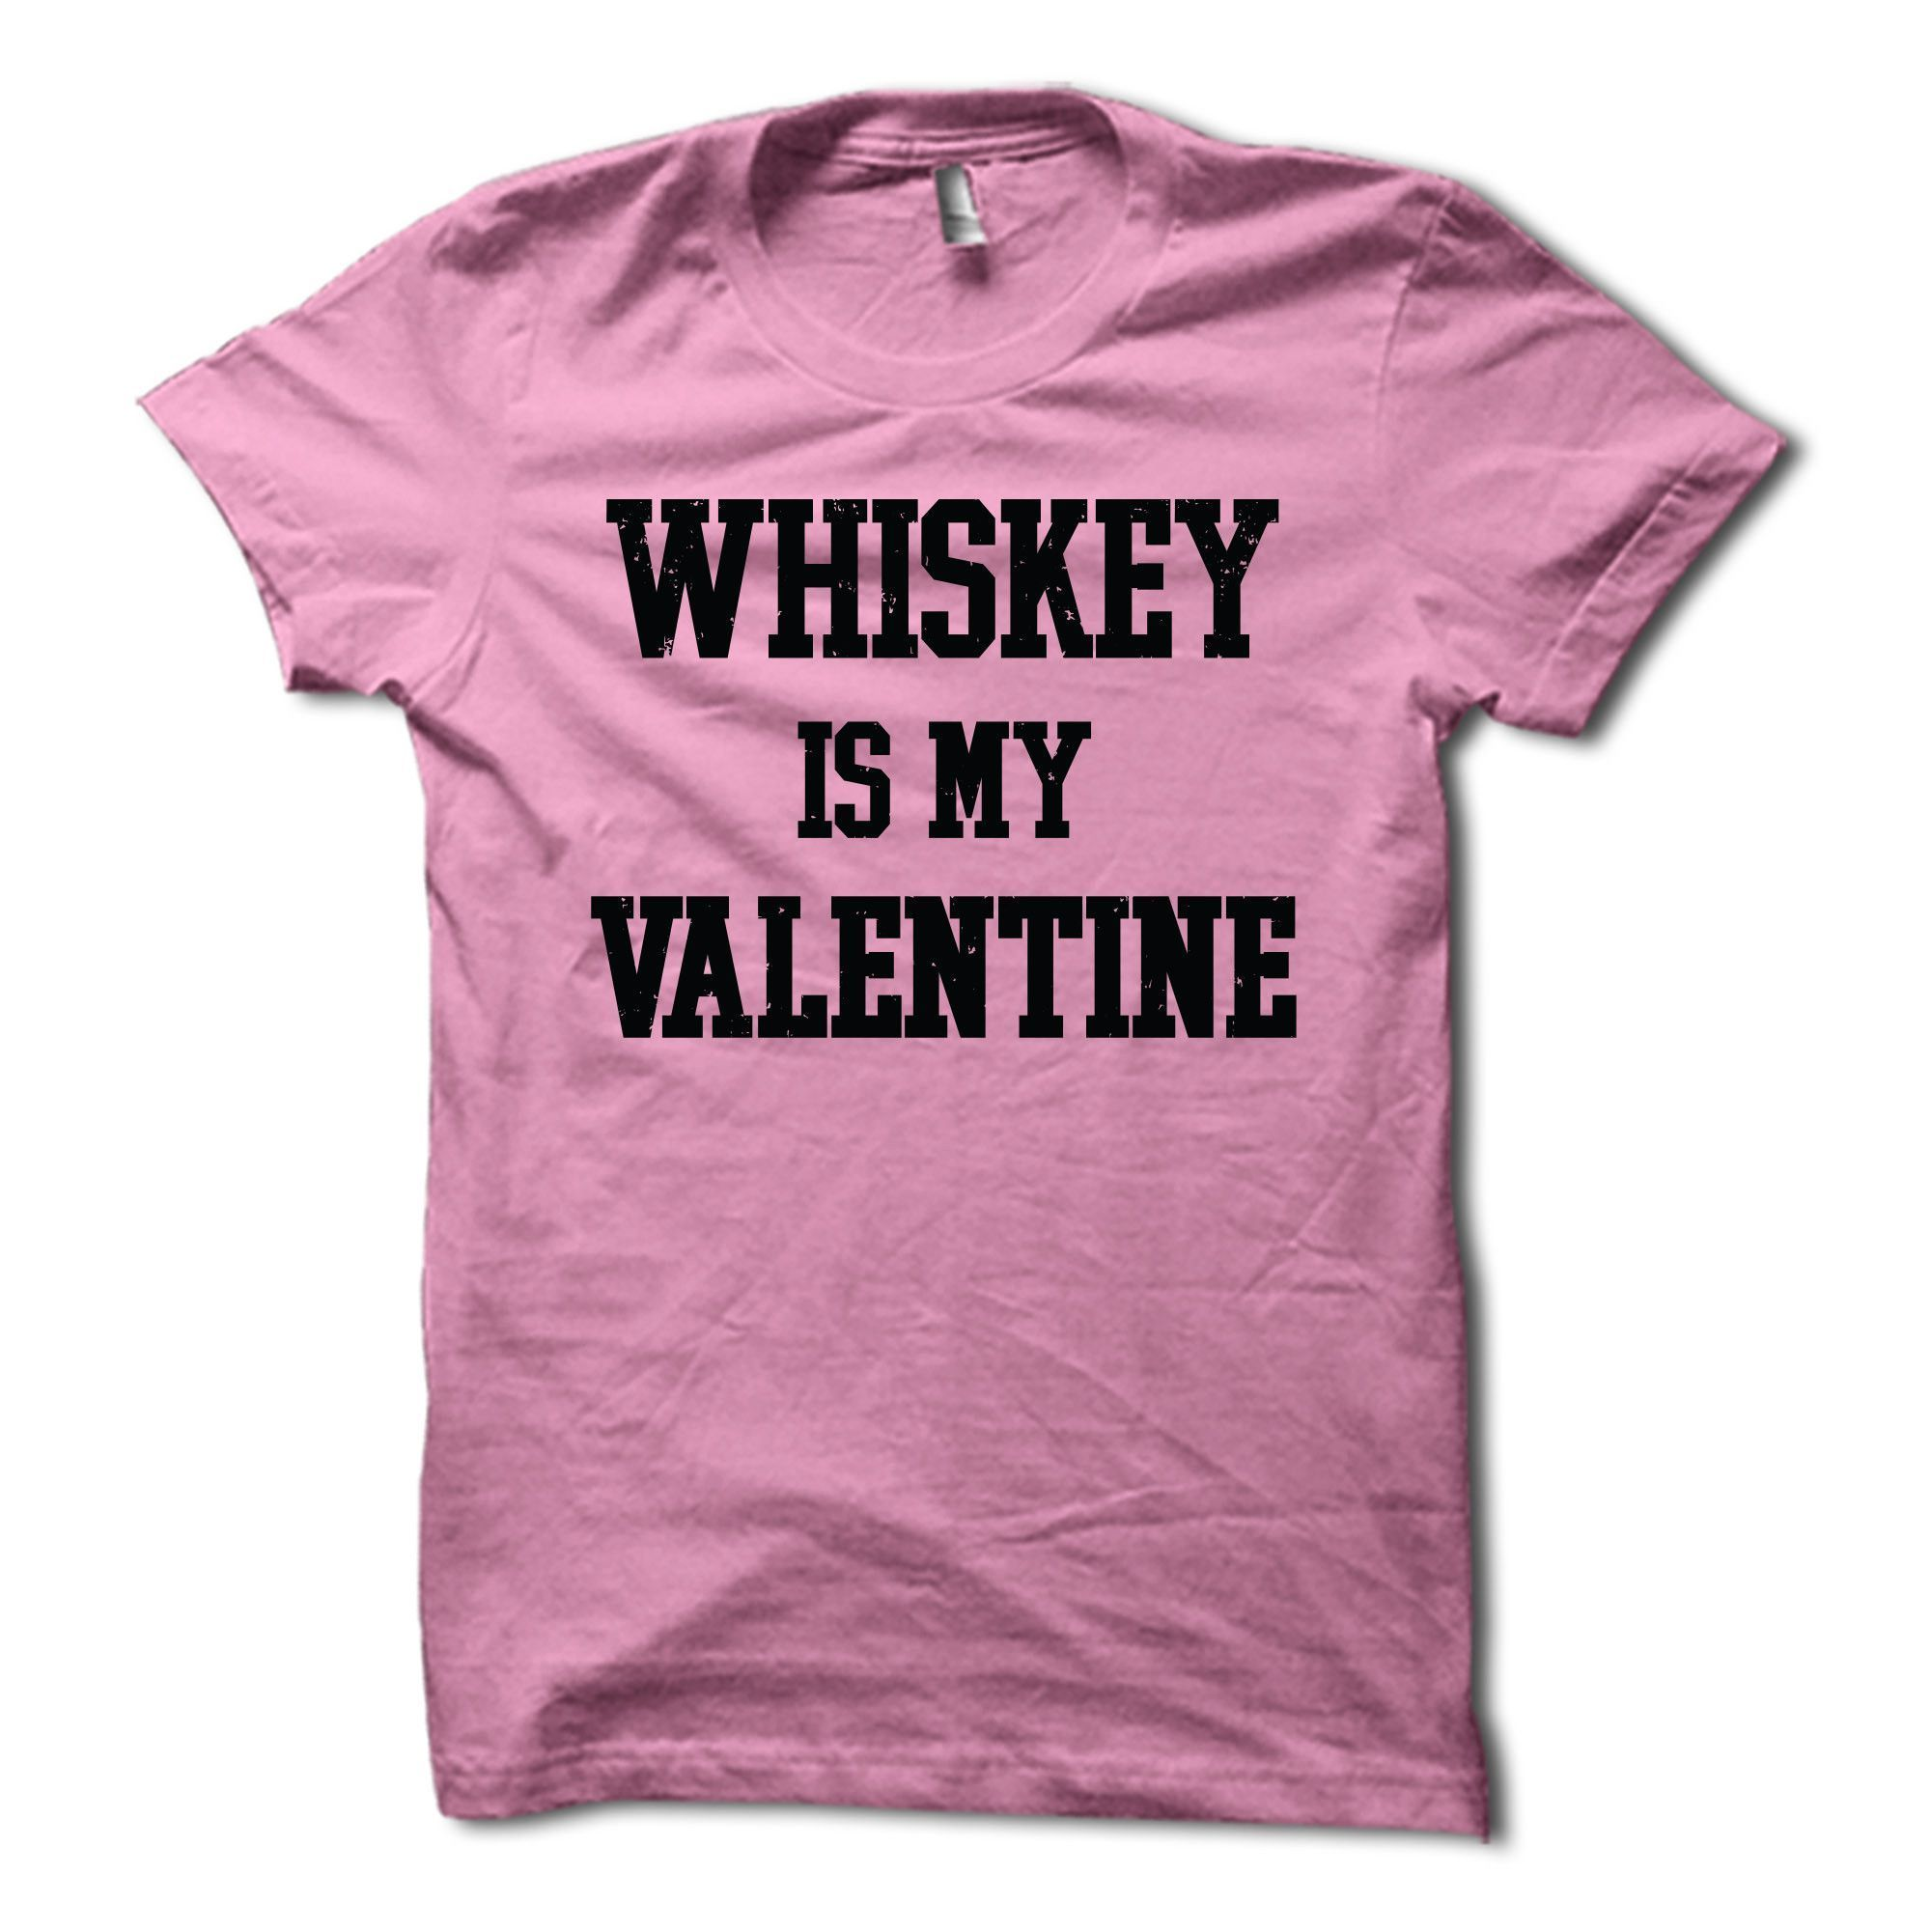 87862591 Funny Valentines Day Shirt For Men - Whiskey Is My Valentine T-Shirt by HG  Apparel #MensT-shirts